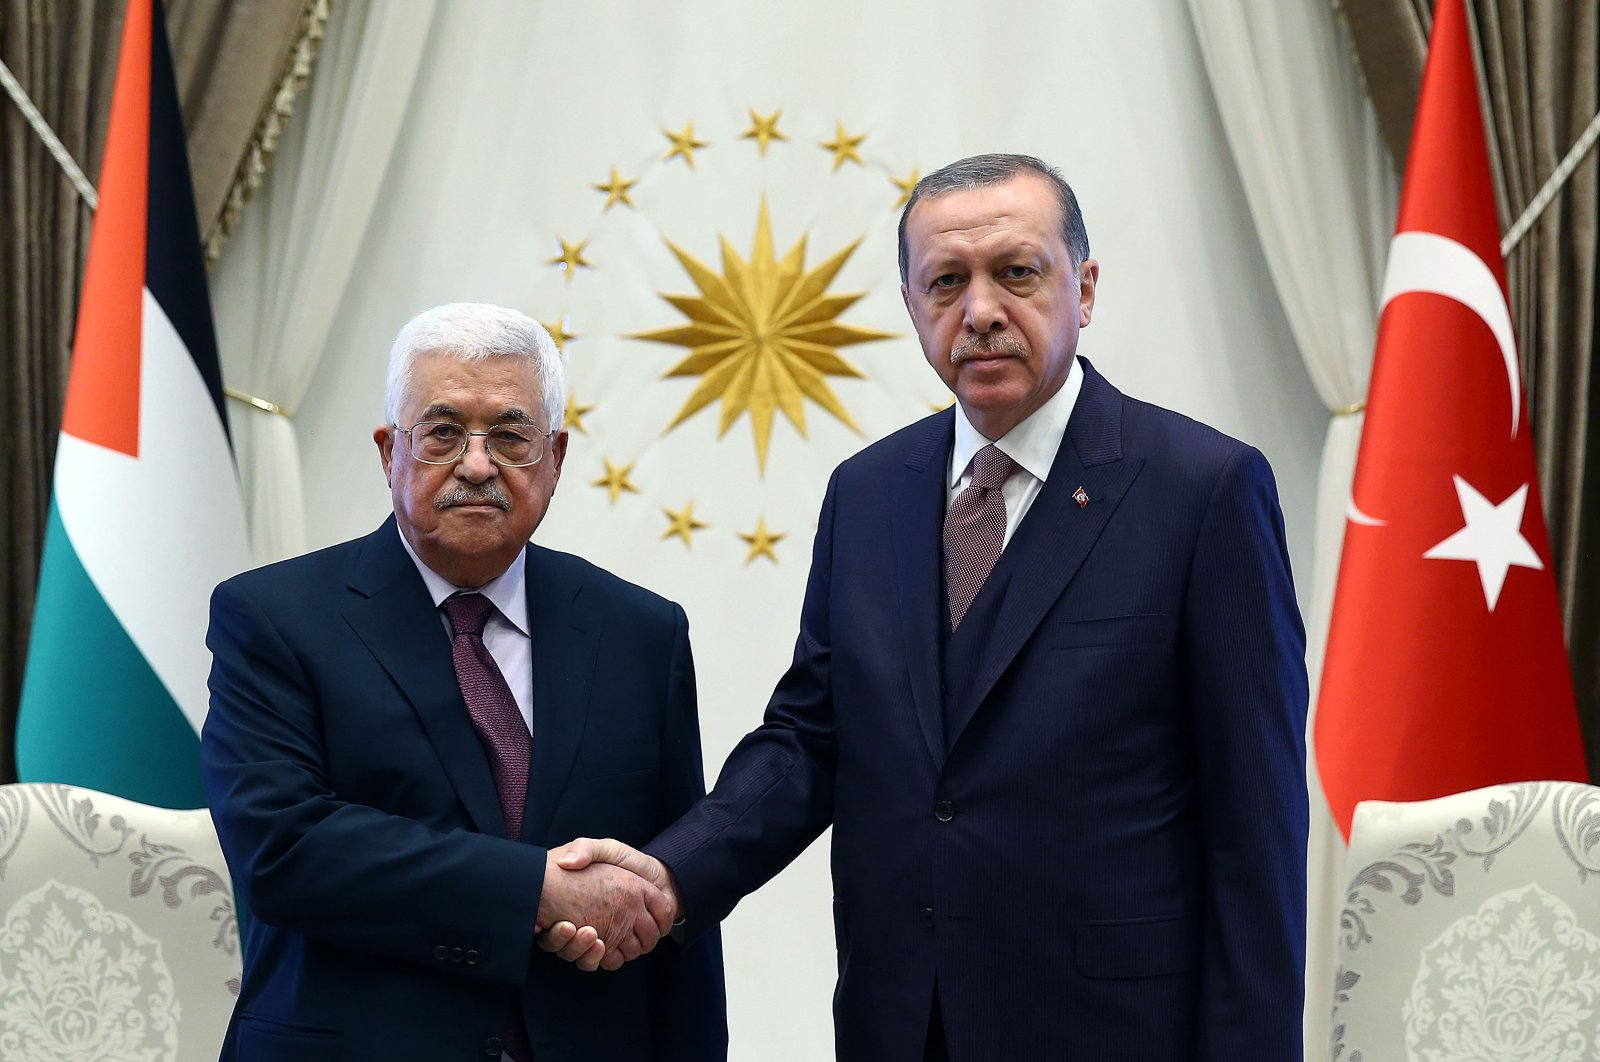 President Recep Tayyip Erdoğan shakes hands with Palestinian President Mahmoud Abbas at the Presidential Complex in Ankara on Oct. 28, 2017 (Sabah File Photo)